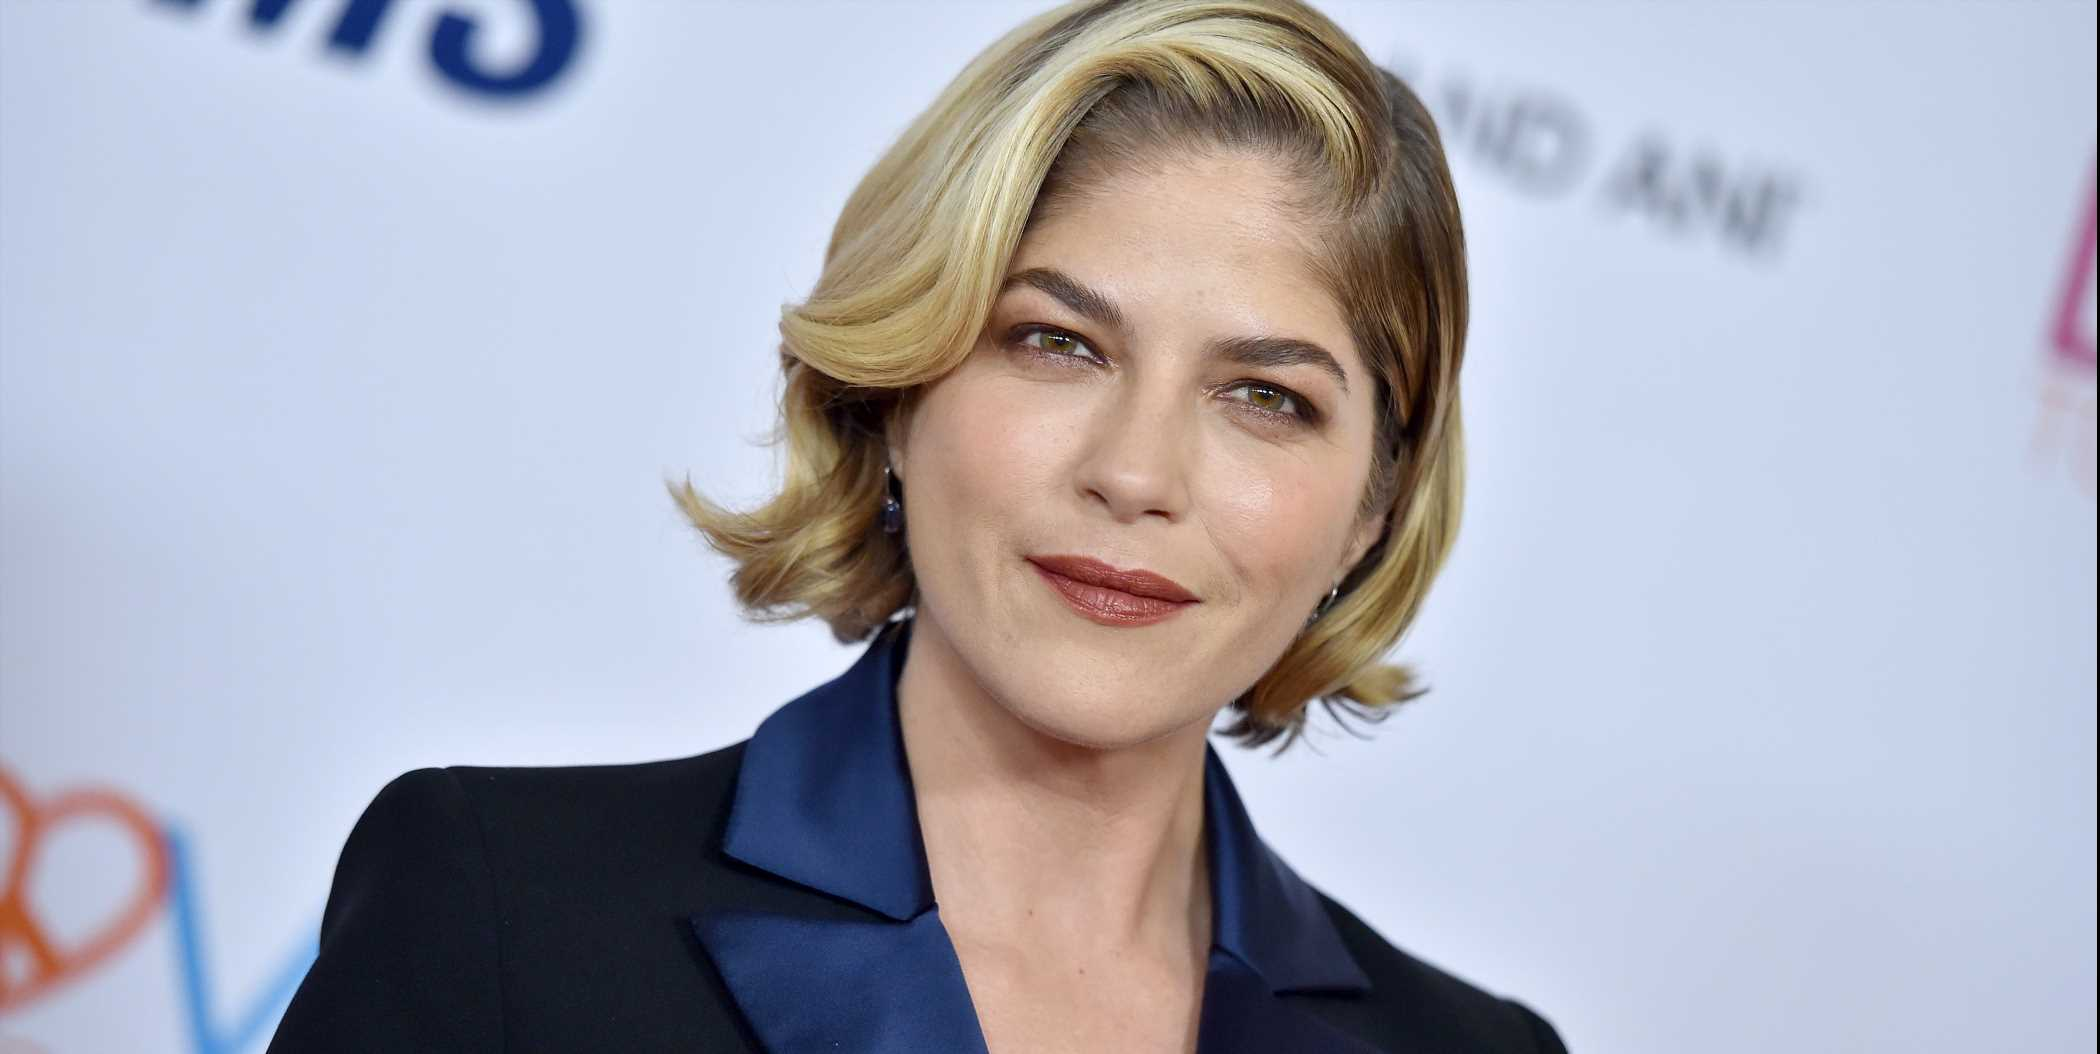 Selma Blair Just Said 'F*** You' To MS With Her Latest Instagram Photo